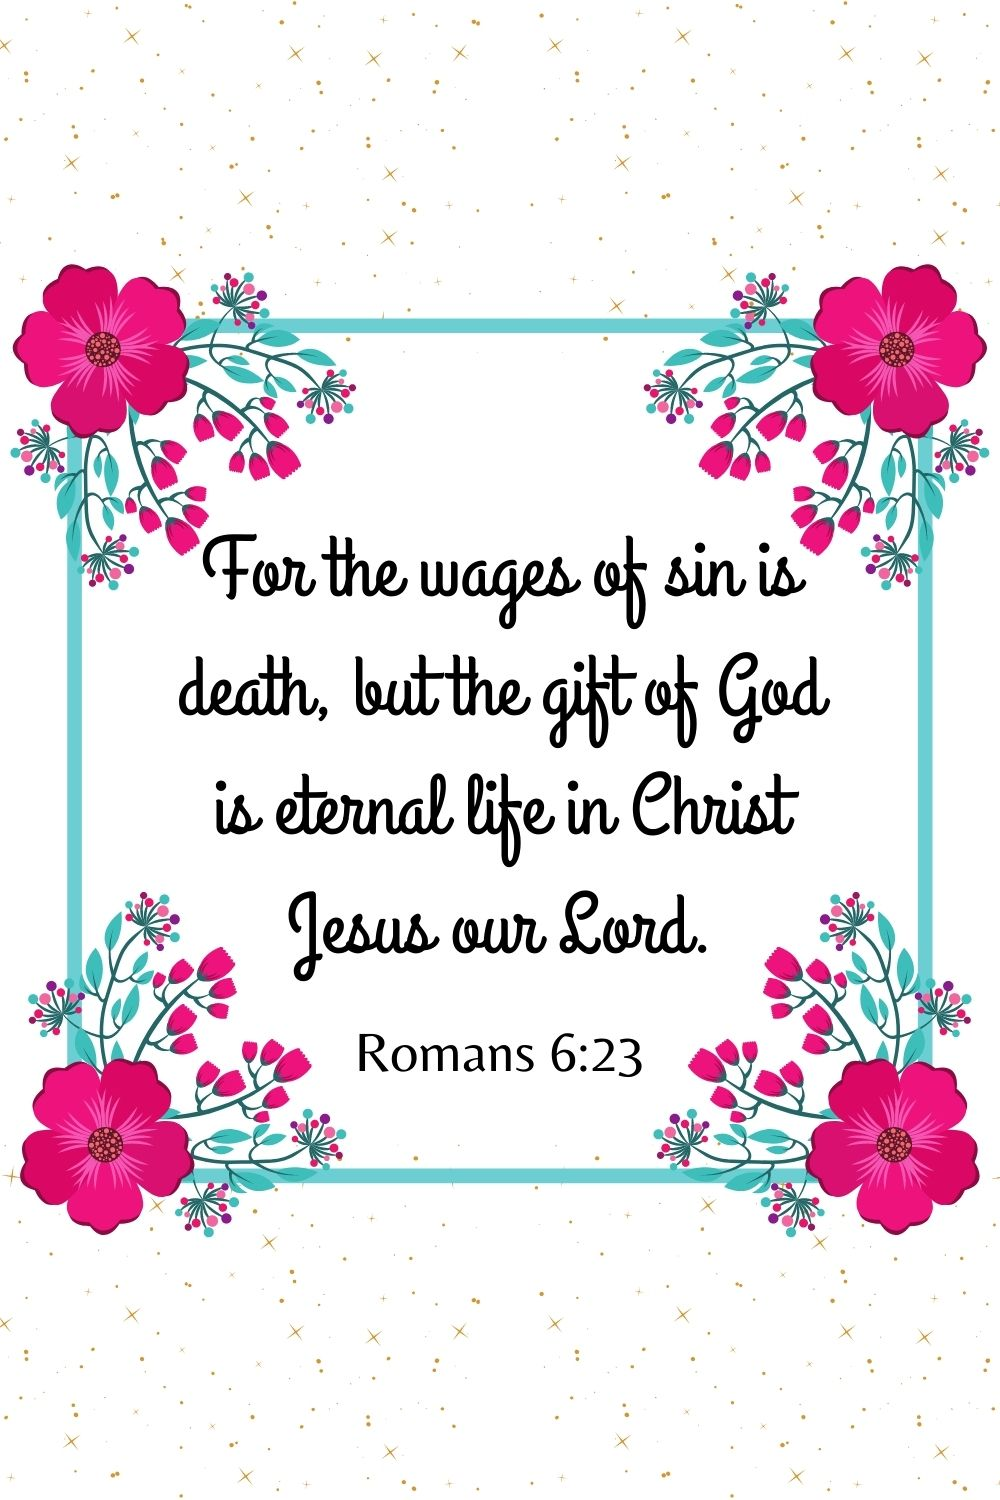 For the wages of sin is death, but the gift of God is eternal life in Christ Jesus our Lord. Romans 6:23